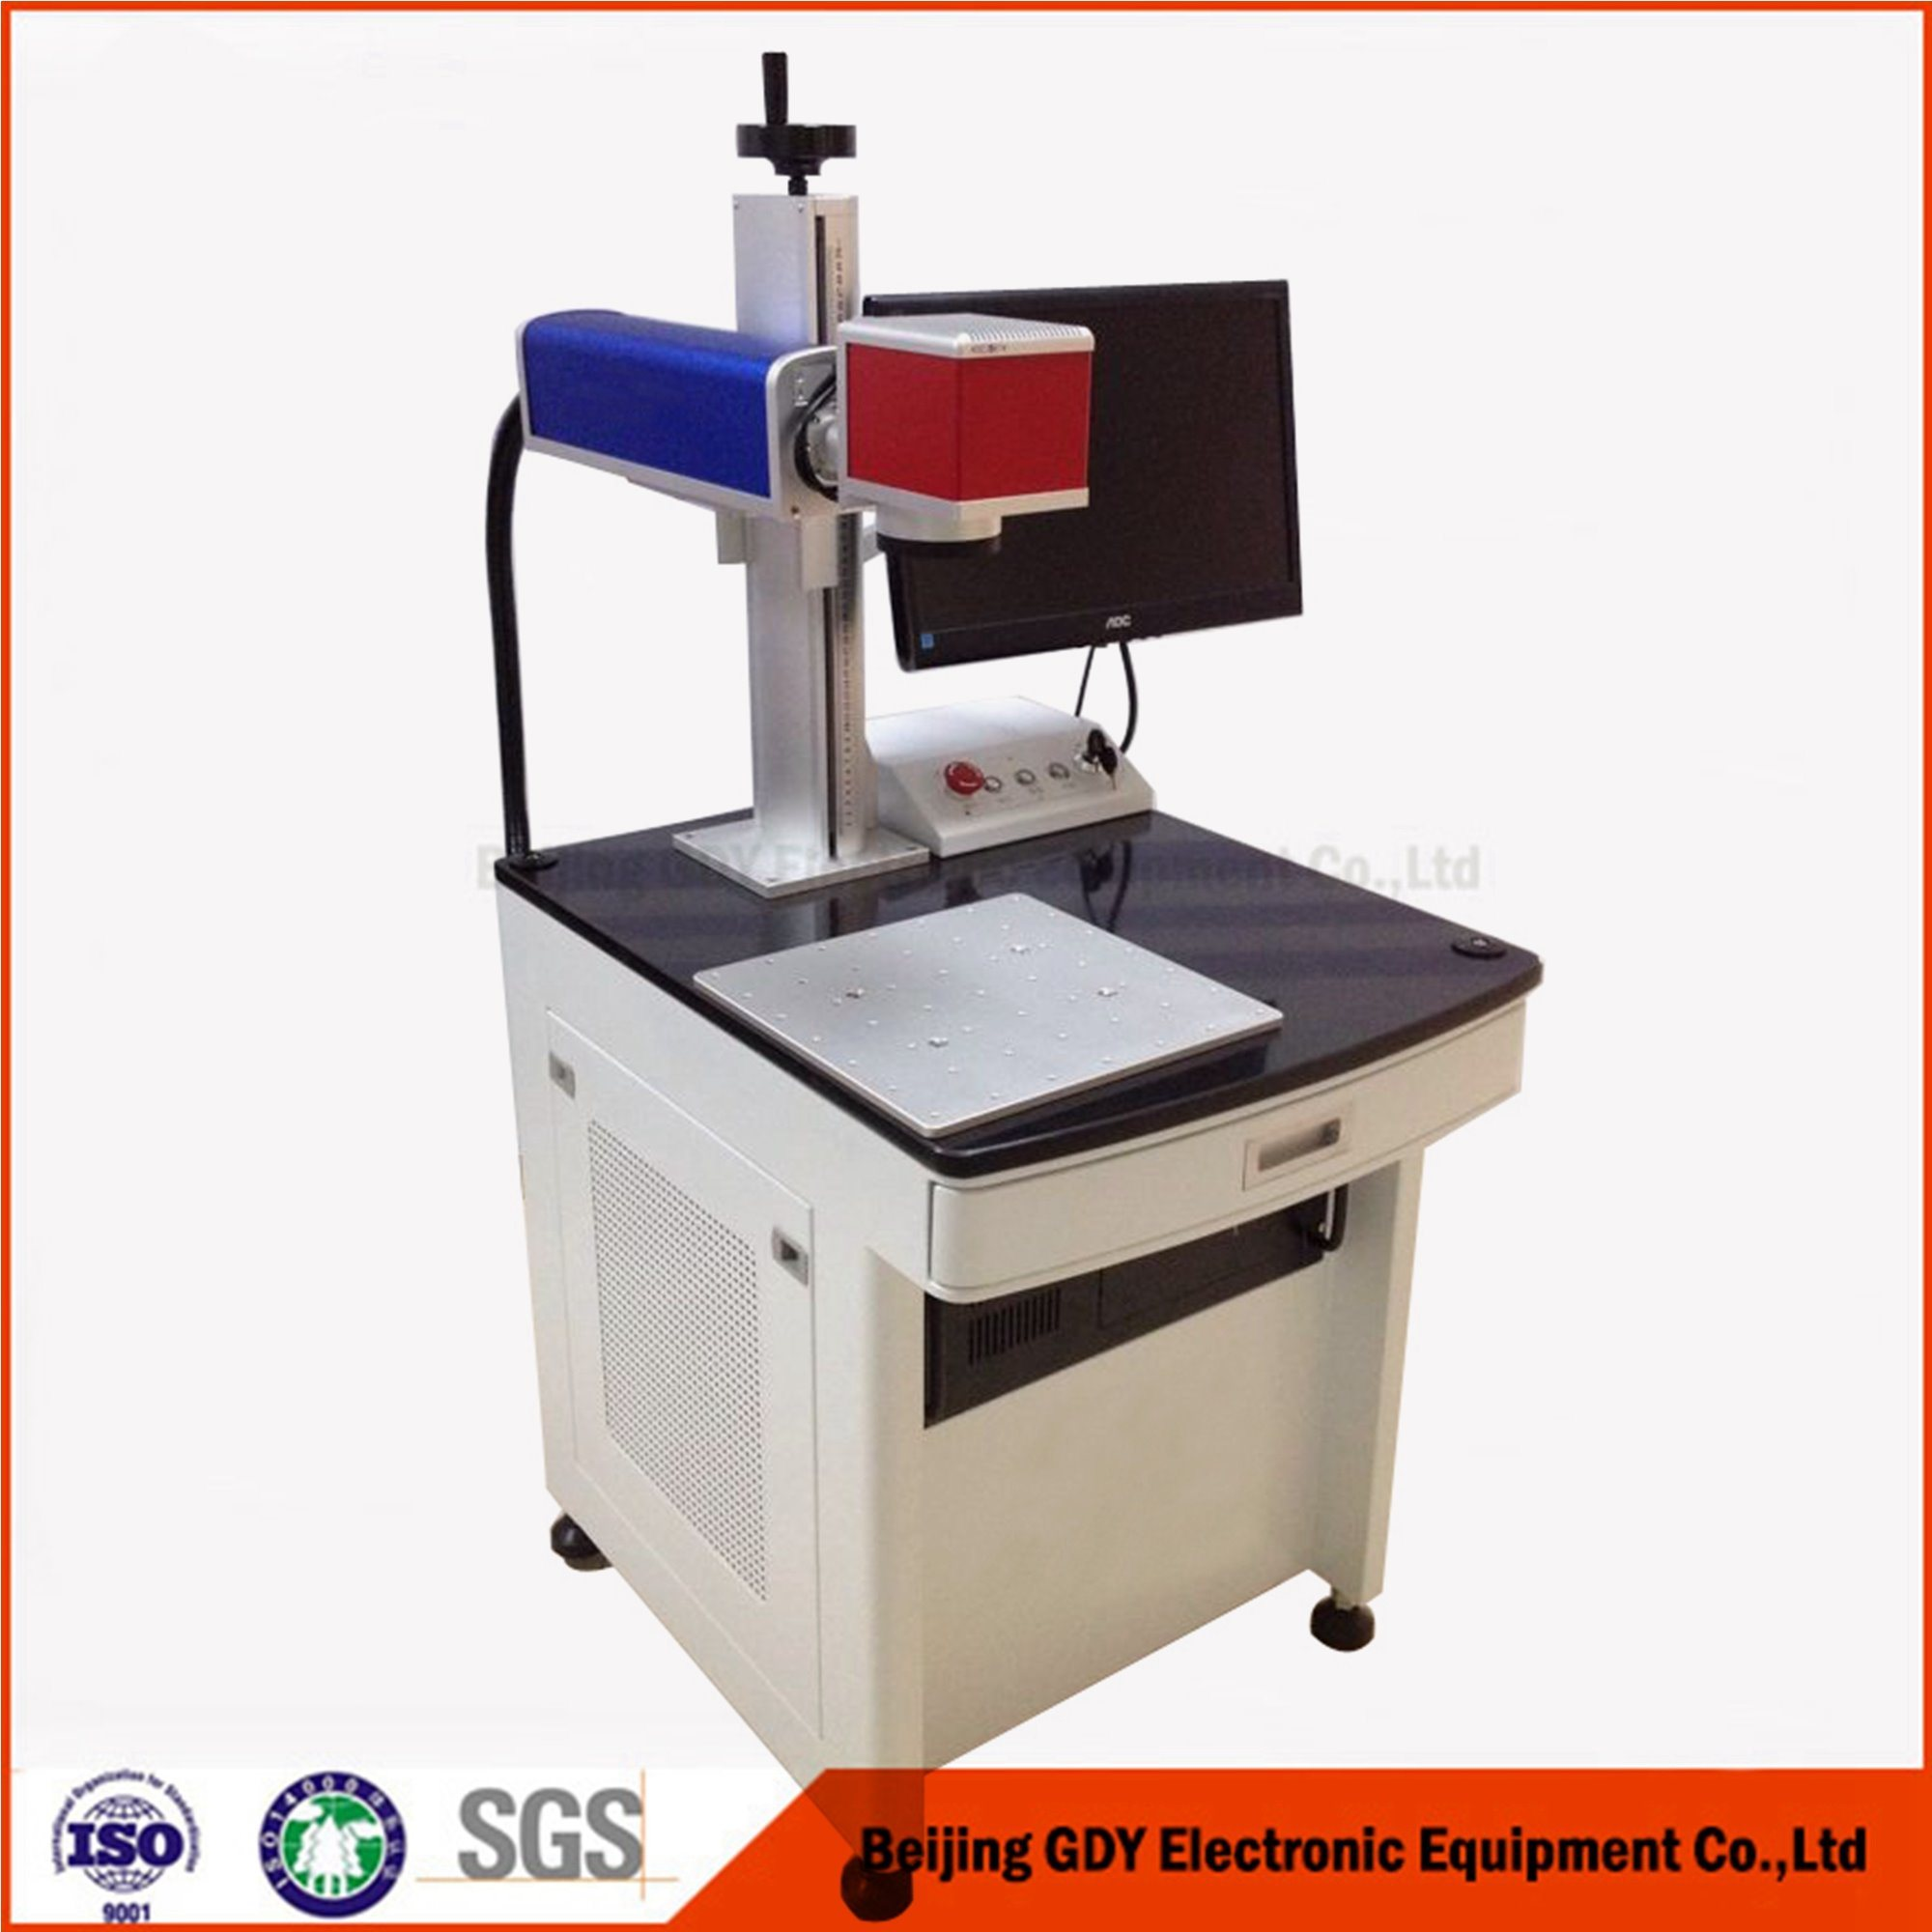 Machinery Laser Engraving Machine for Assembly Line